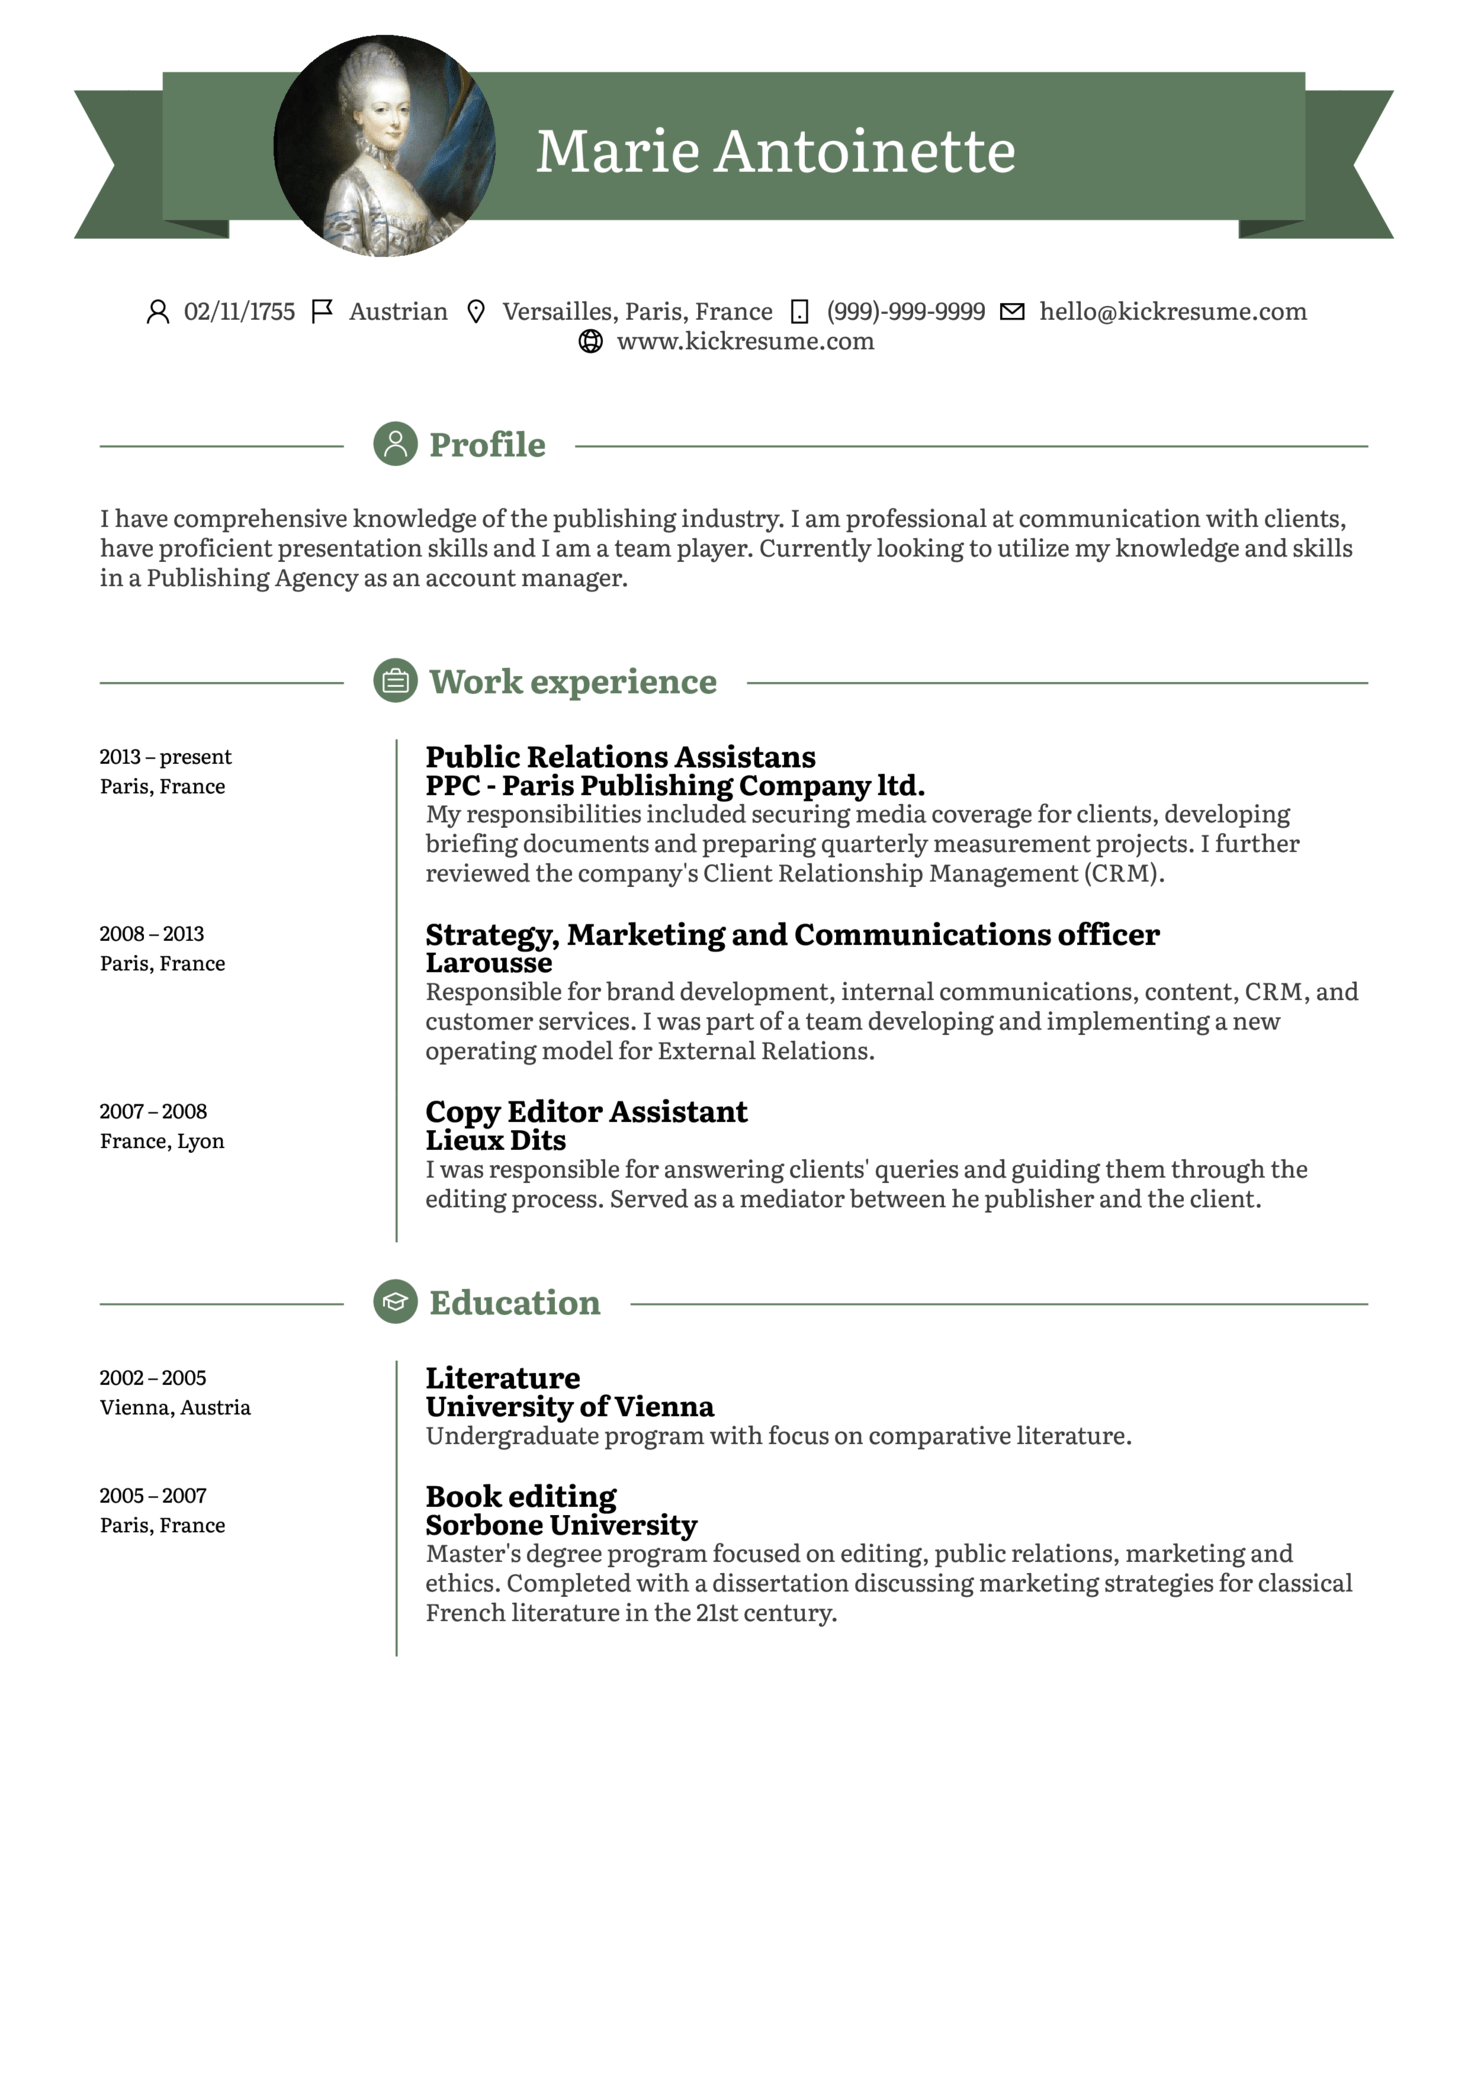 Resume Examples by Real People: Entry Level Account Manager Resume ...